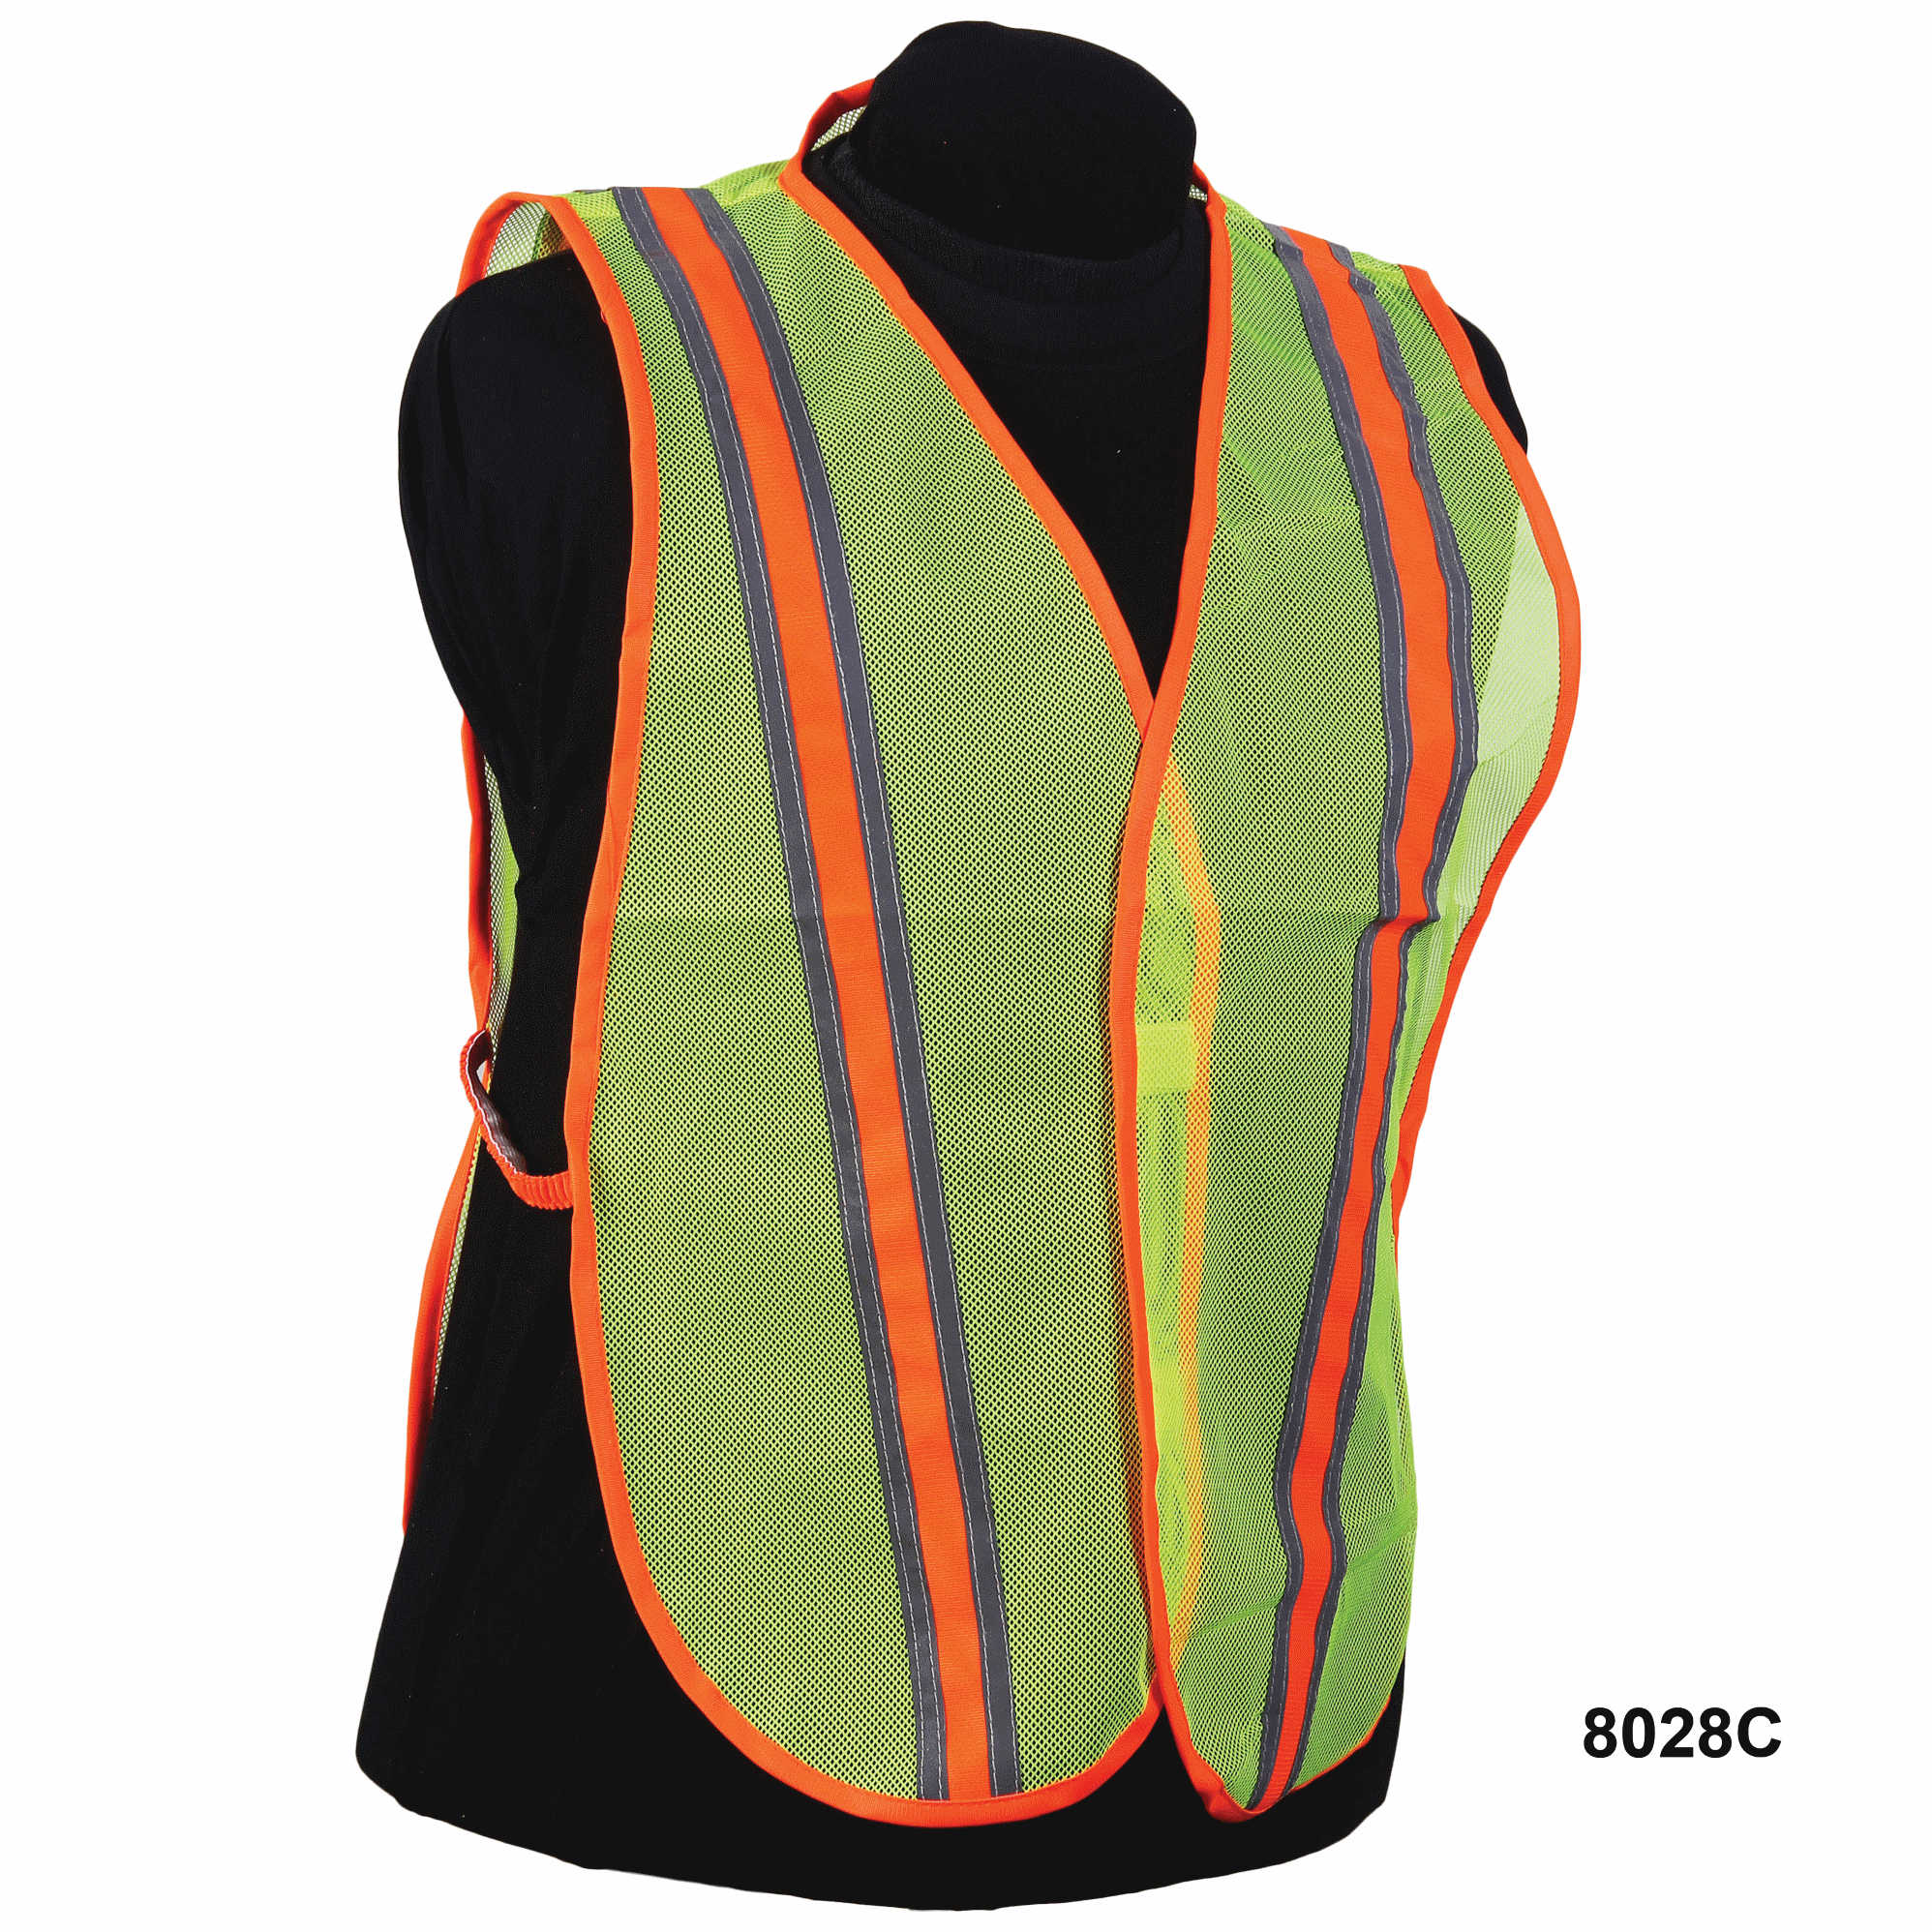 Nylon Lime Mesh Vest w/ Orange Stripe